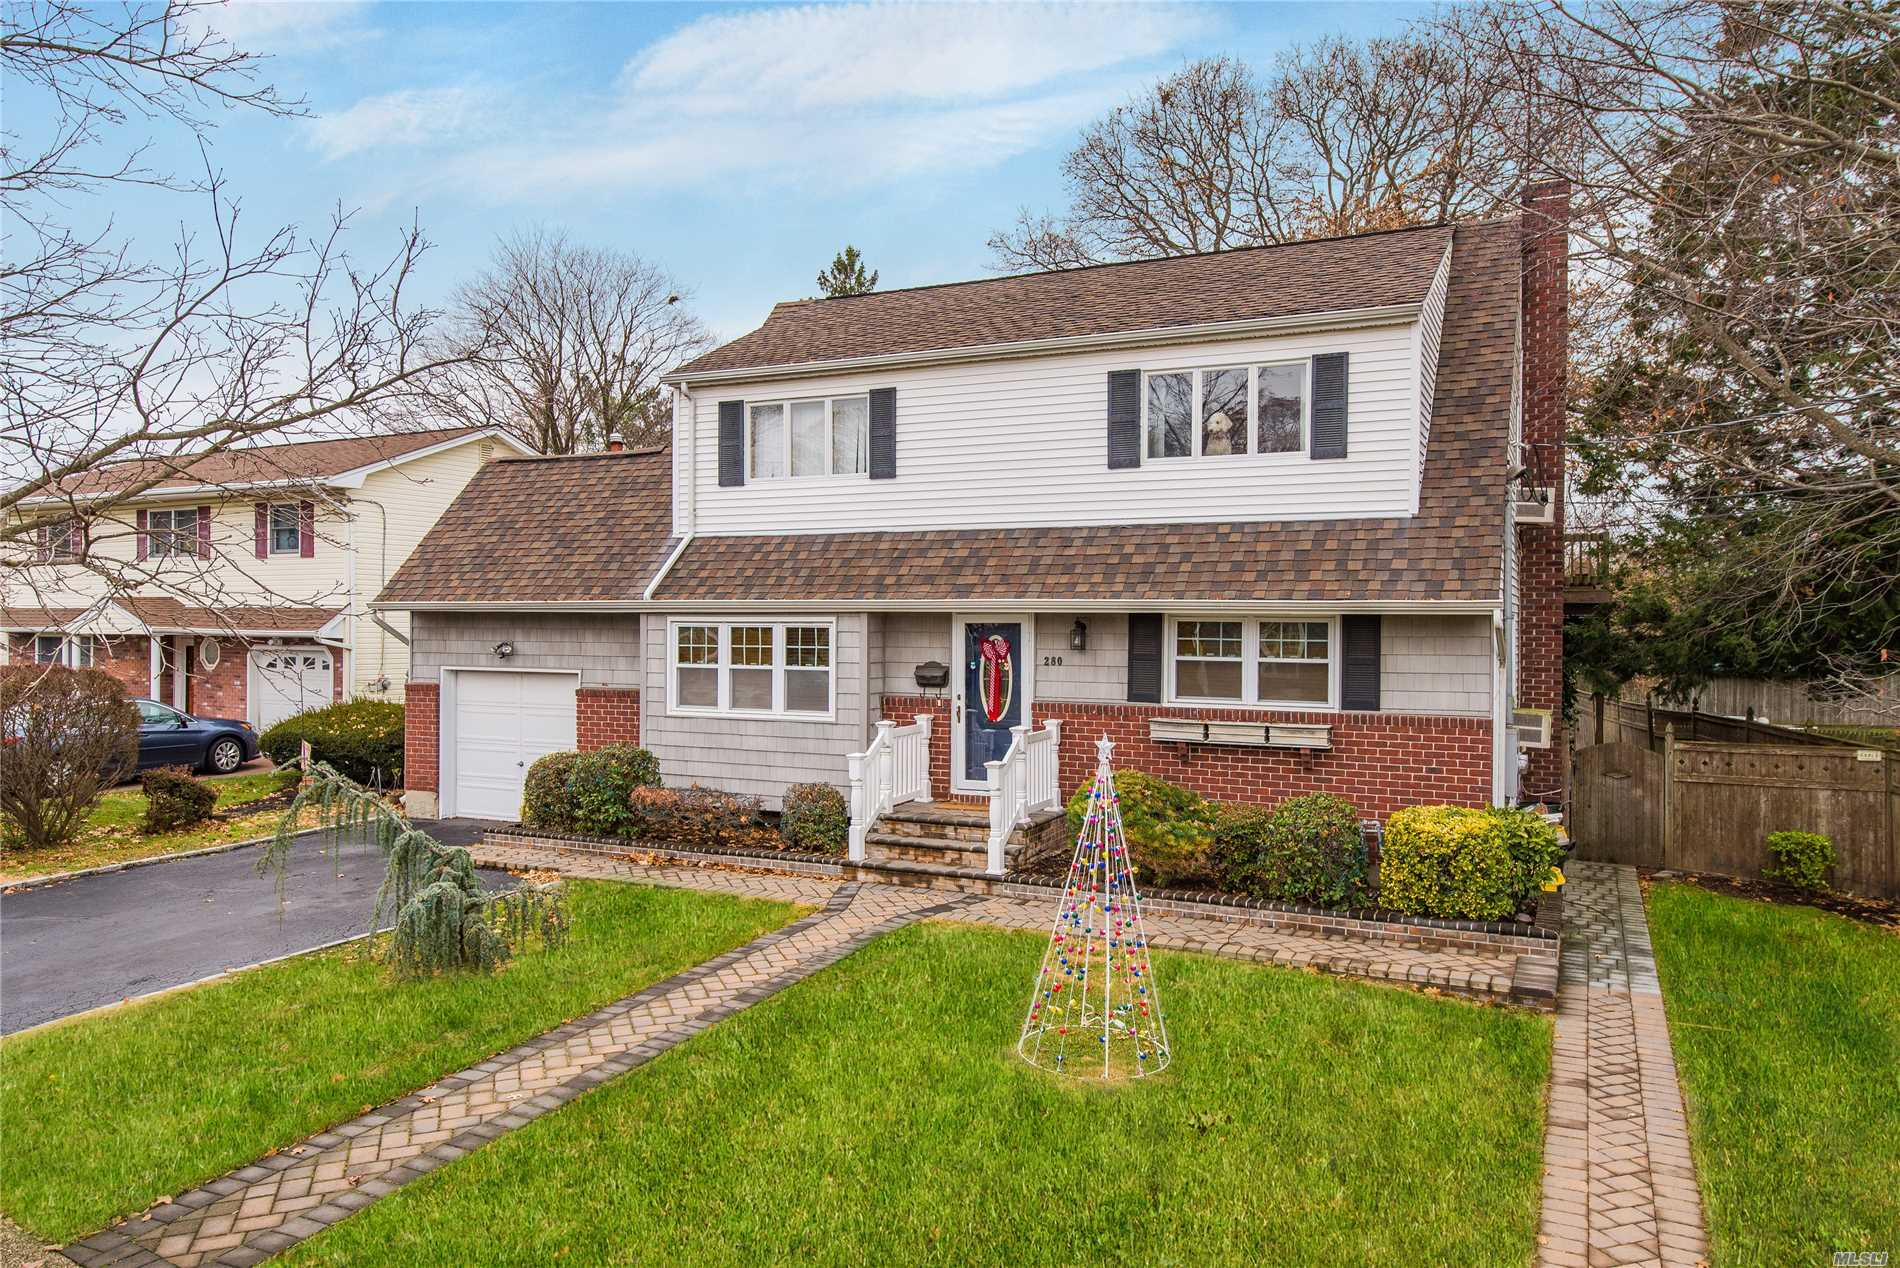 Its All About Convenience! Fully Updated 2 Bedroom Cozy Home Within Walking Distance To The Main Street Retailers, Restaurants, And The Lirr. Hurry, Will Not Last Long!